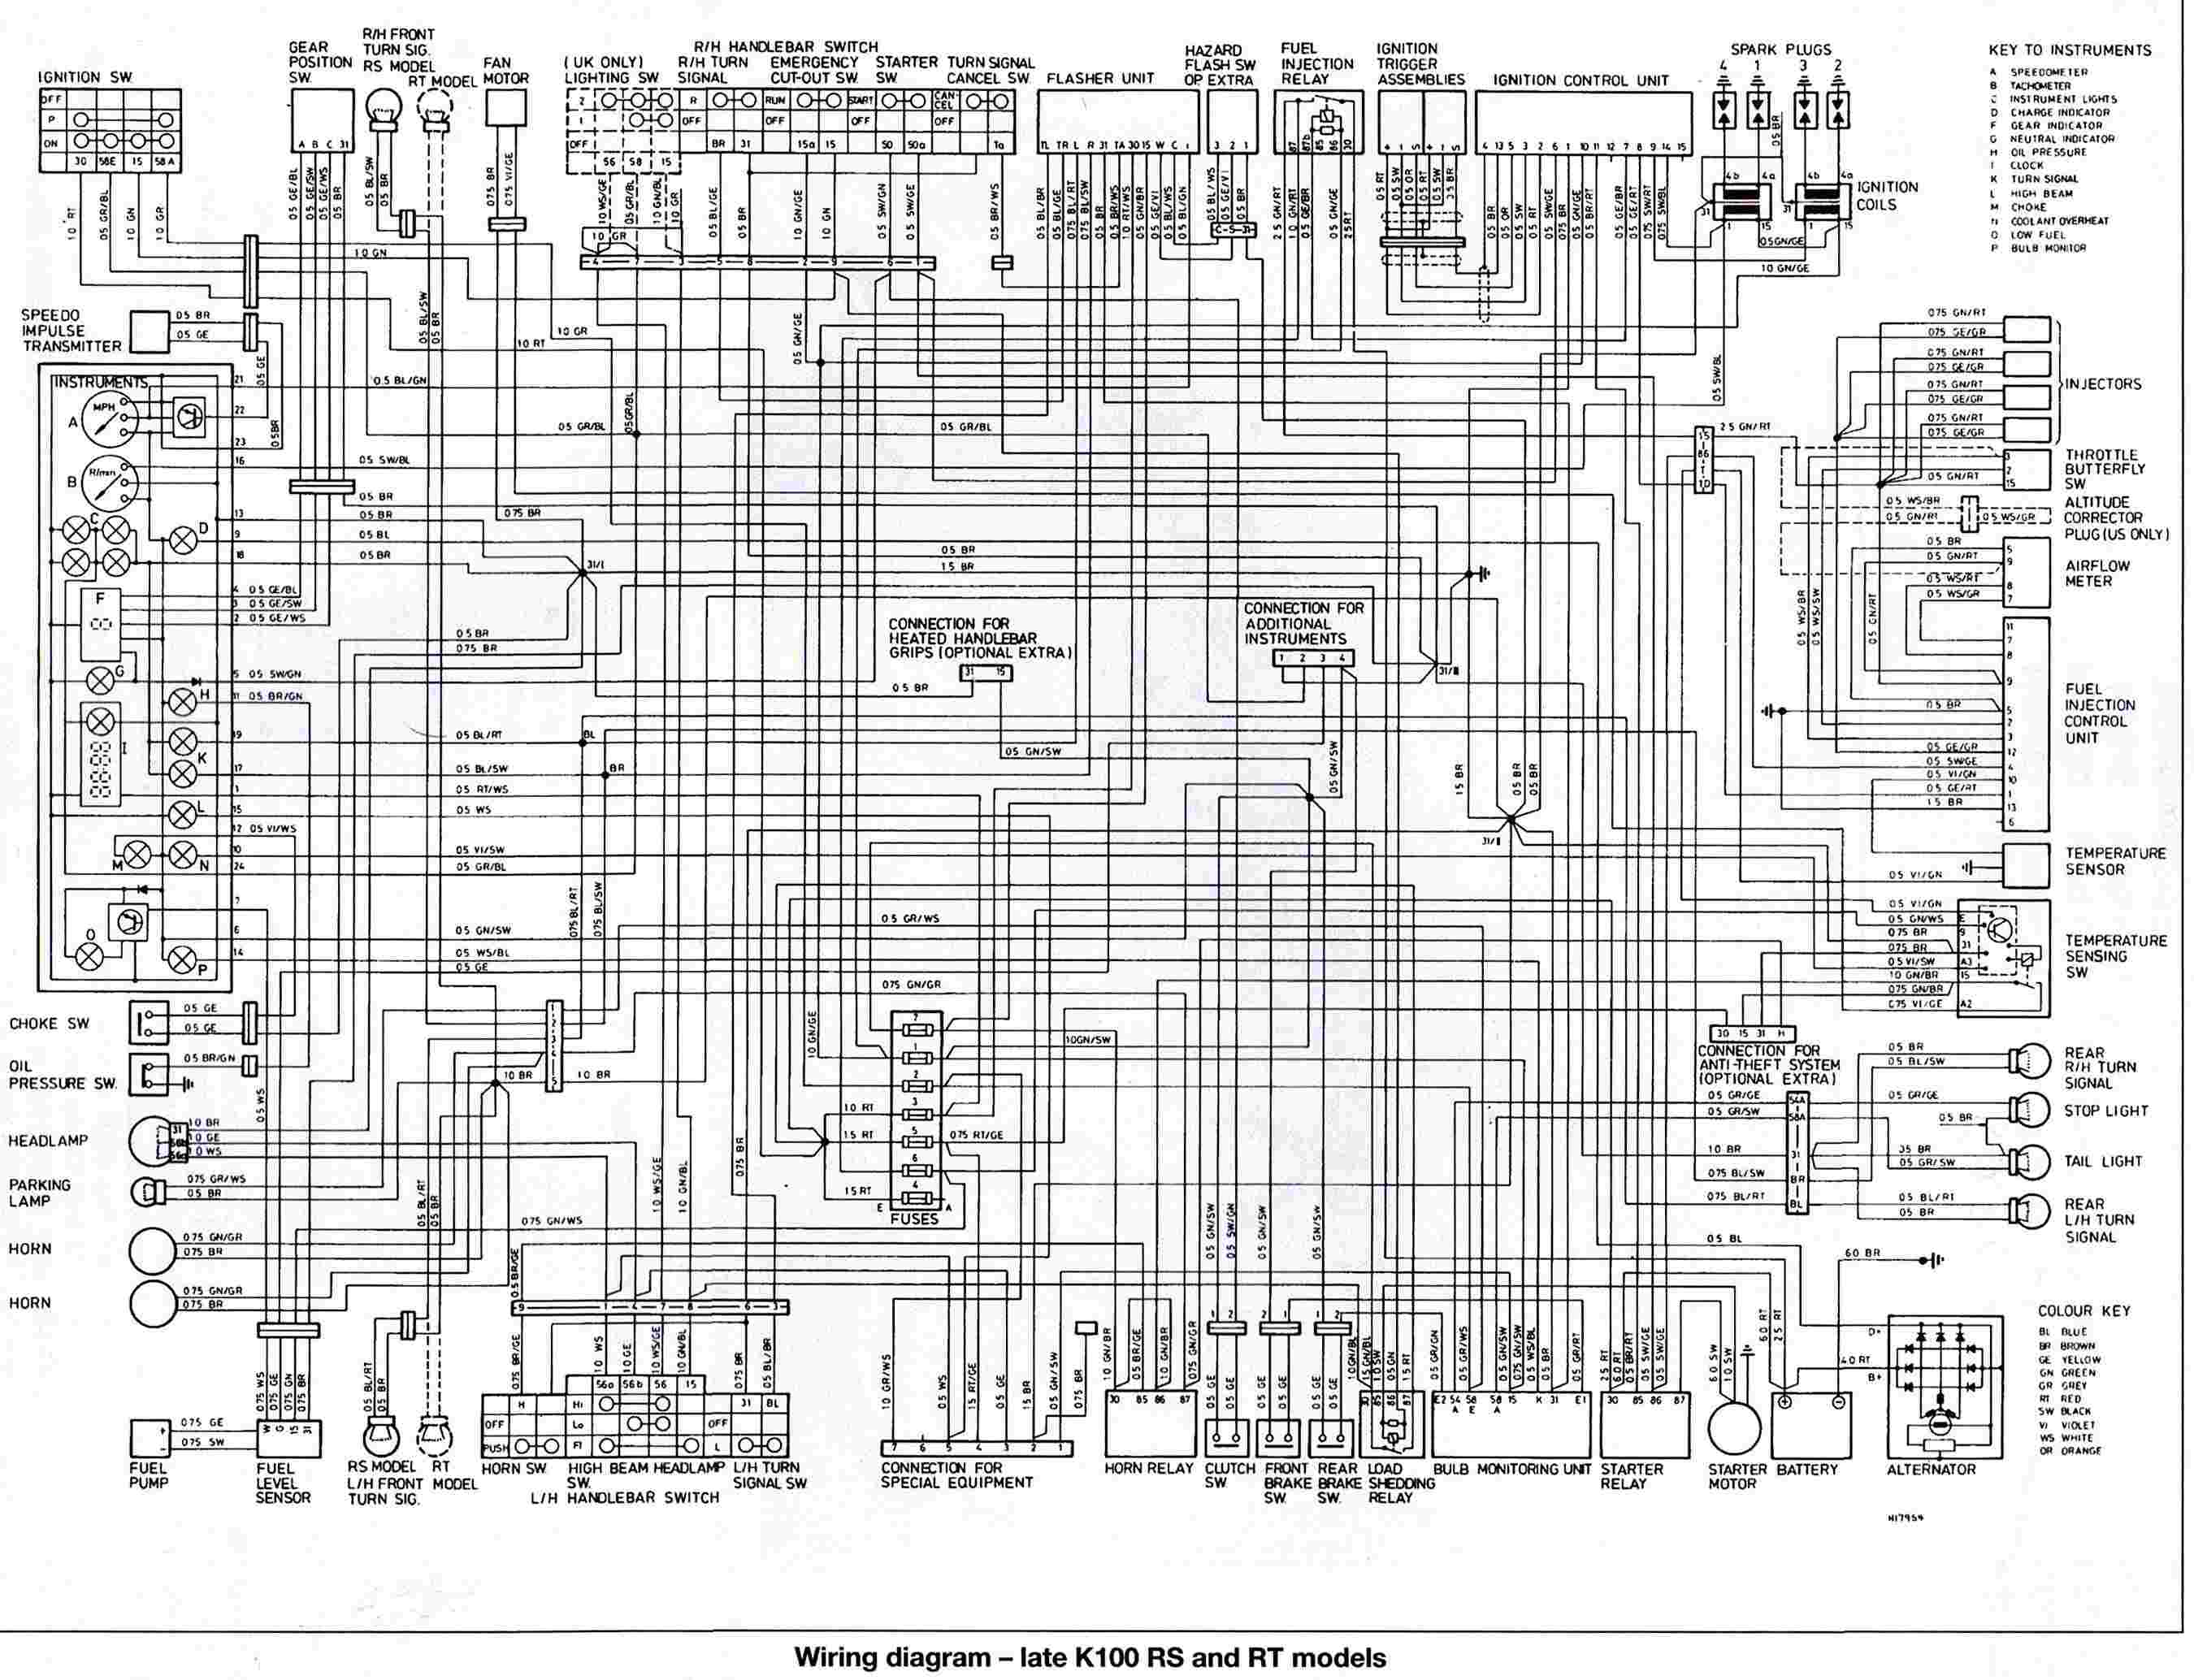 wiring diagram for bmw schematic diagramk100 wiring diagram wiring diagramk100 wiring diagram ignition great installation of wiring diagram \\\\u2022bmw